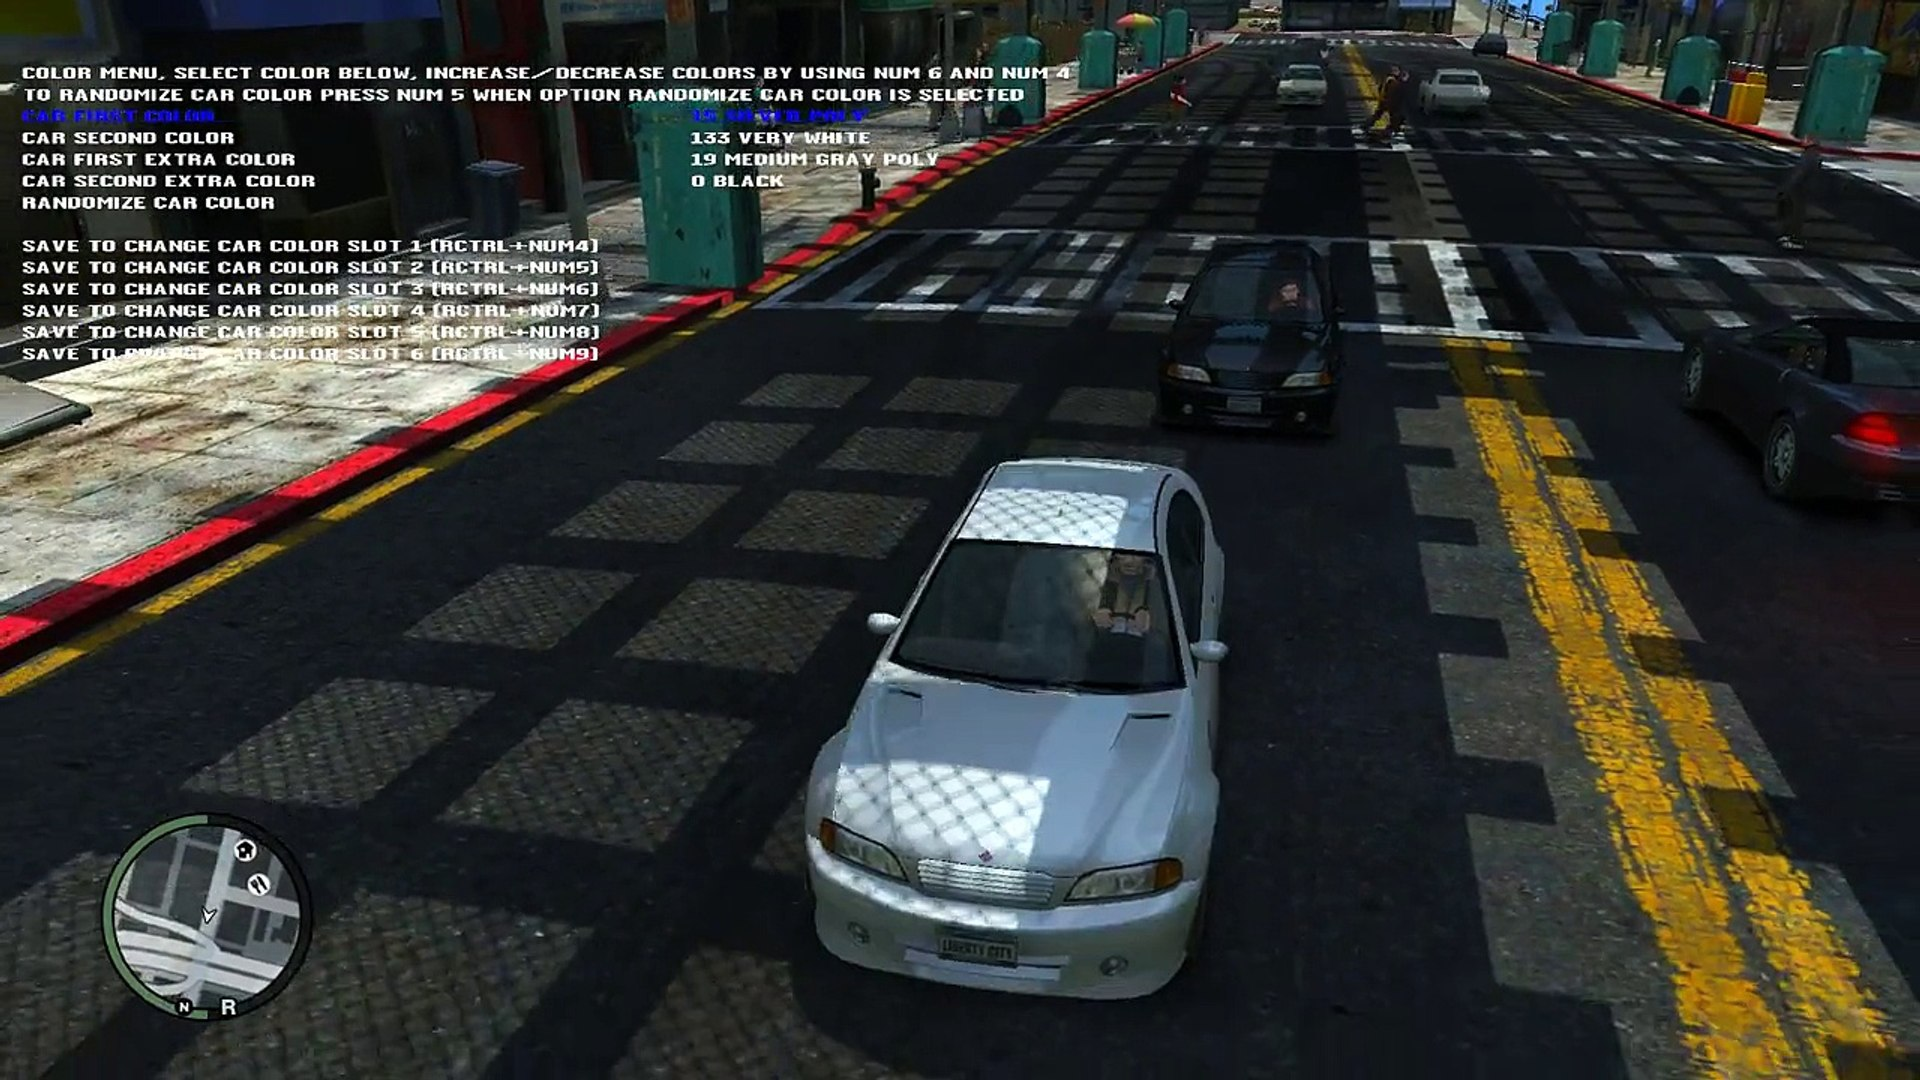 GTA IV Road Textures by fonia5 Super High Quality